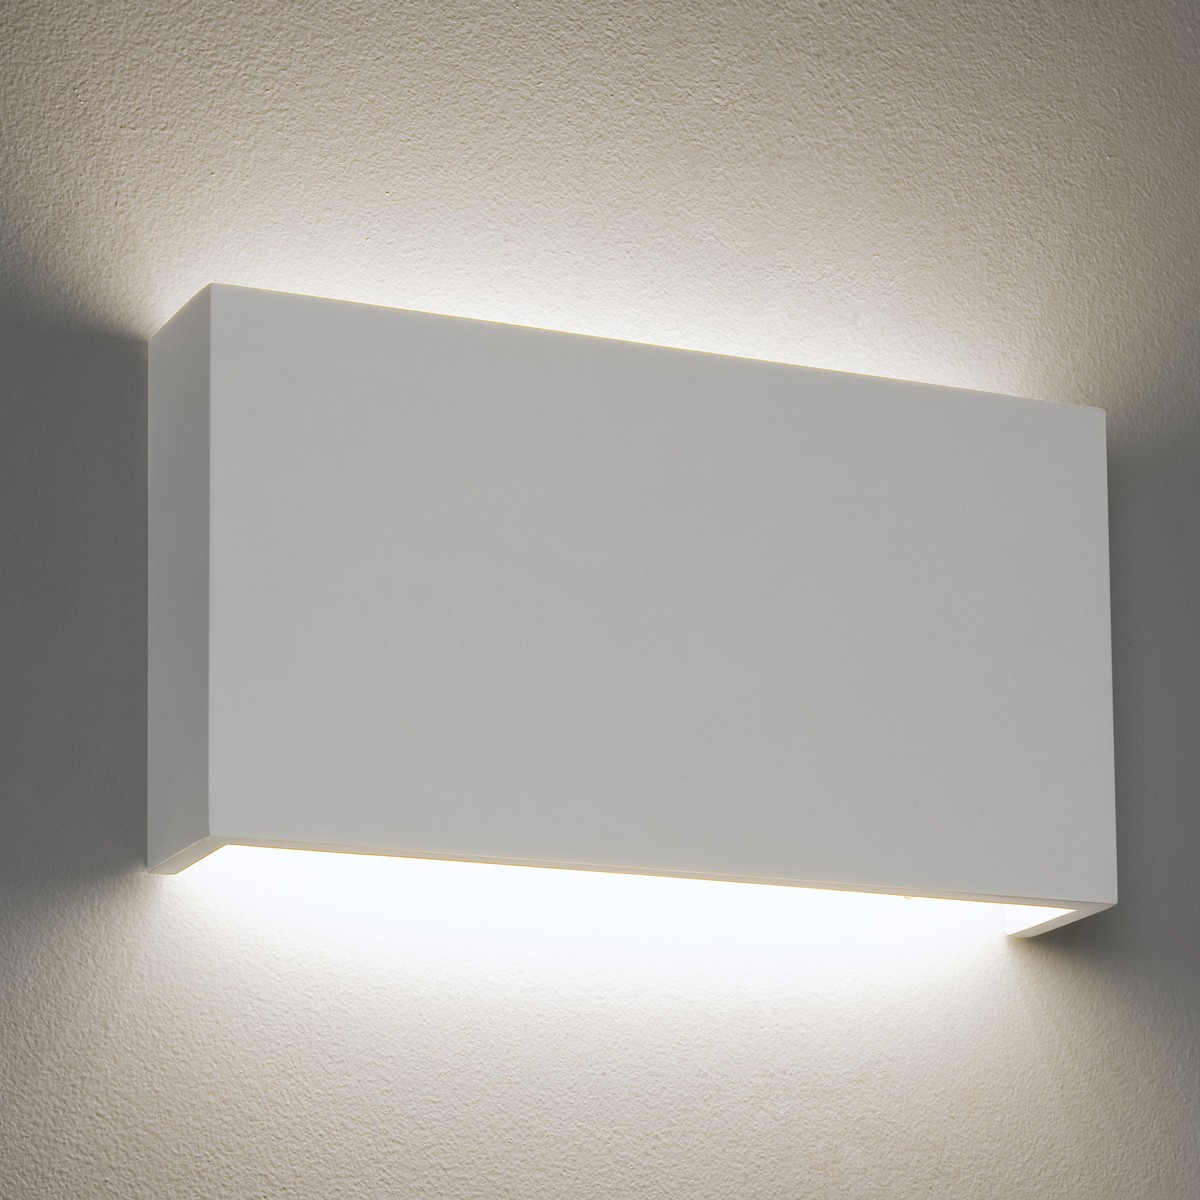 Astro Rio 325 2700K Plaster LED Wall Light at UK ... on Led Wall id=78629